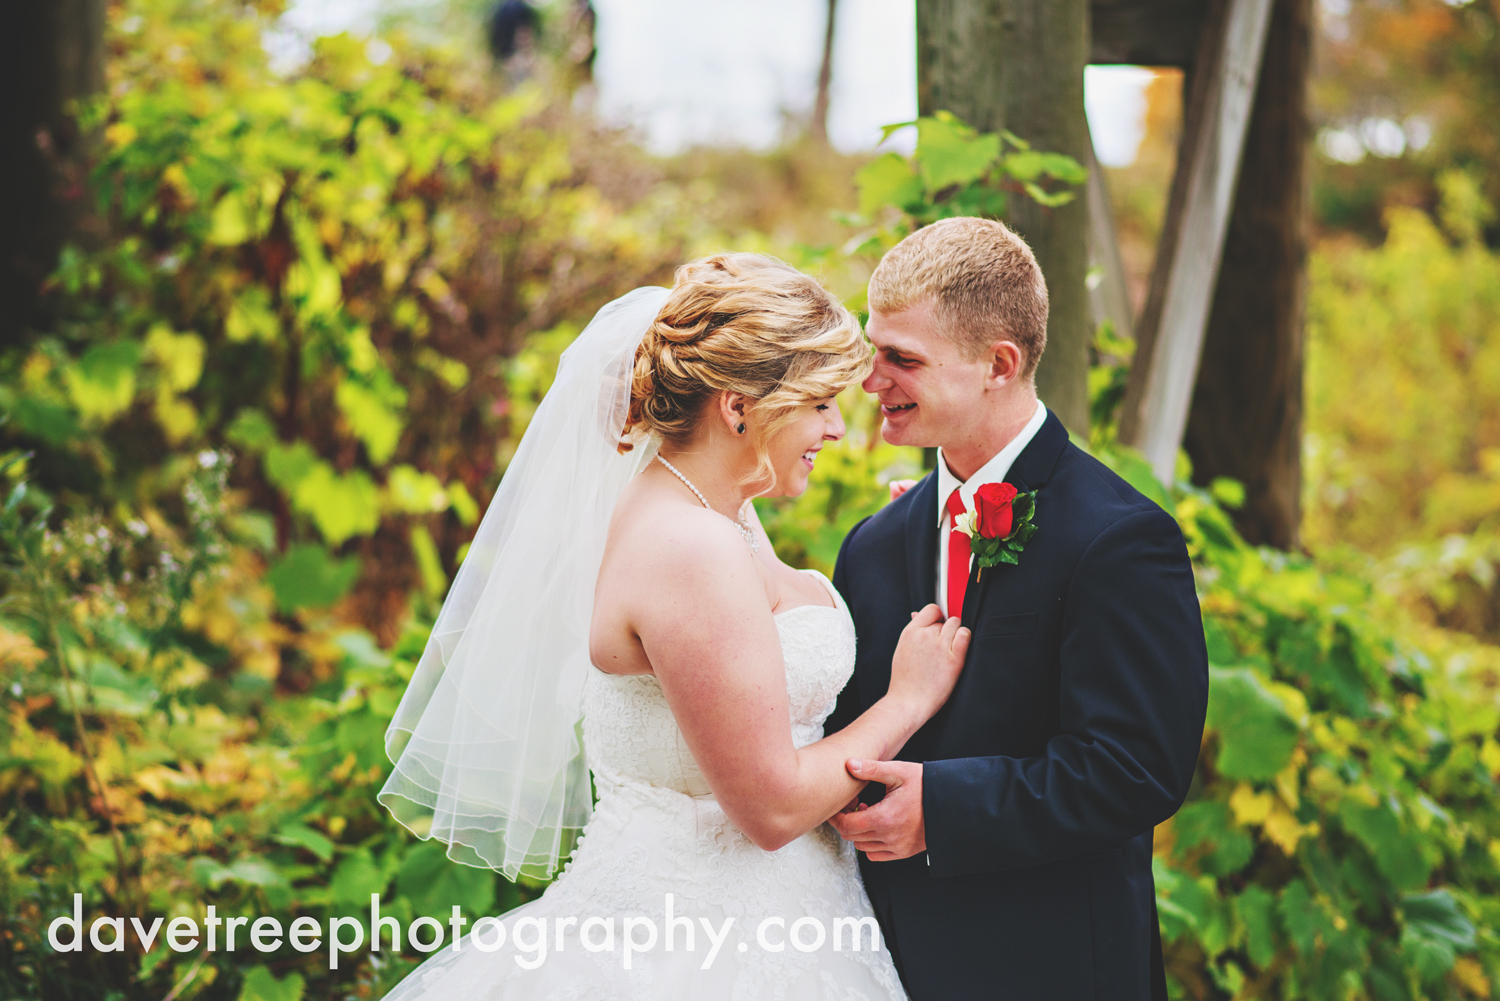 holland_wedding_photographer_05.jpg